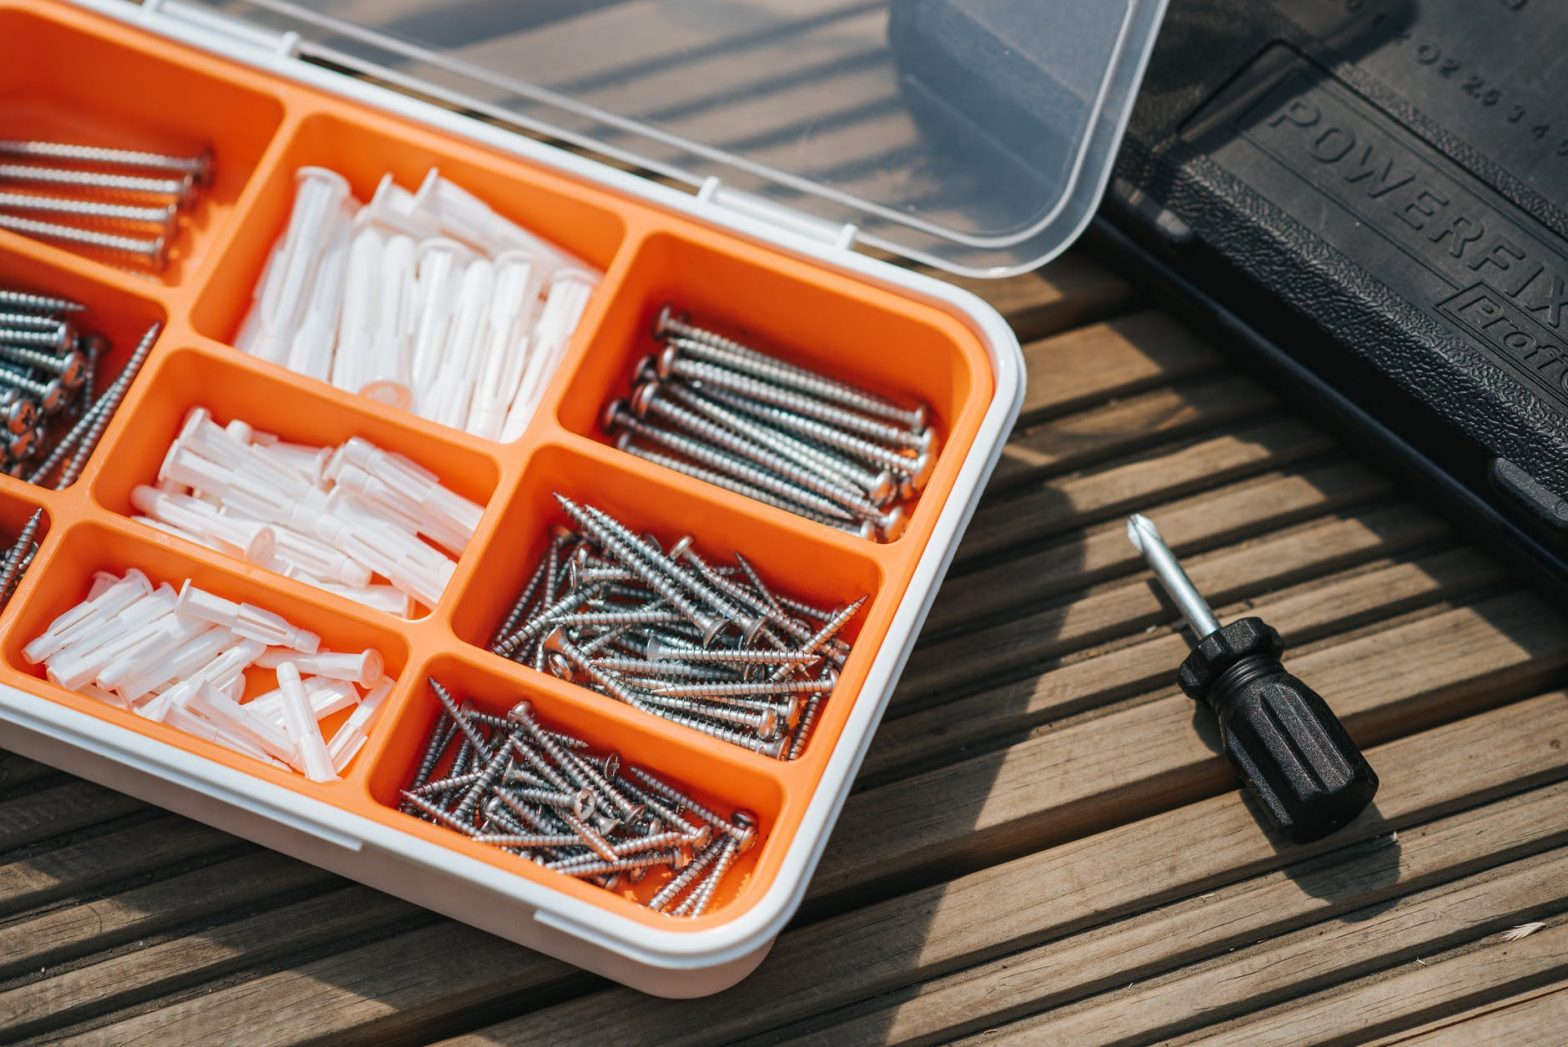 What Tools and Supplies to Use That Will Make Your DIY Projects Stand Out